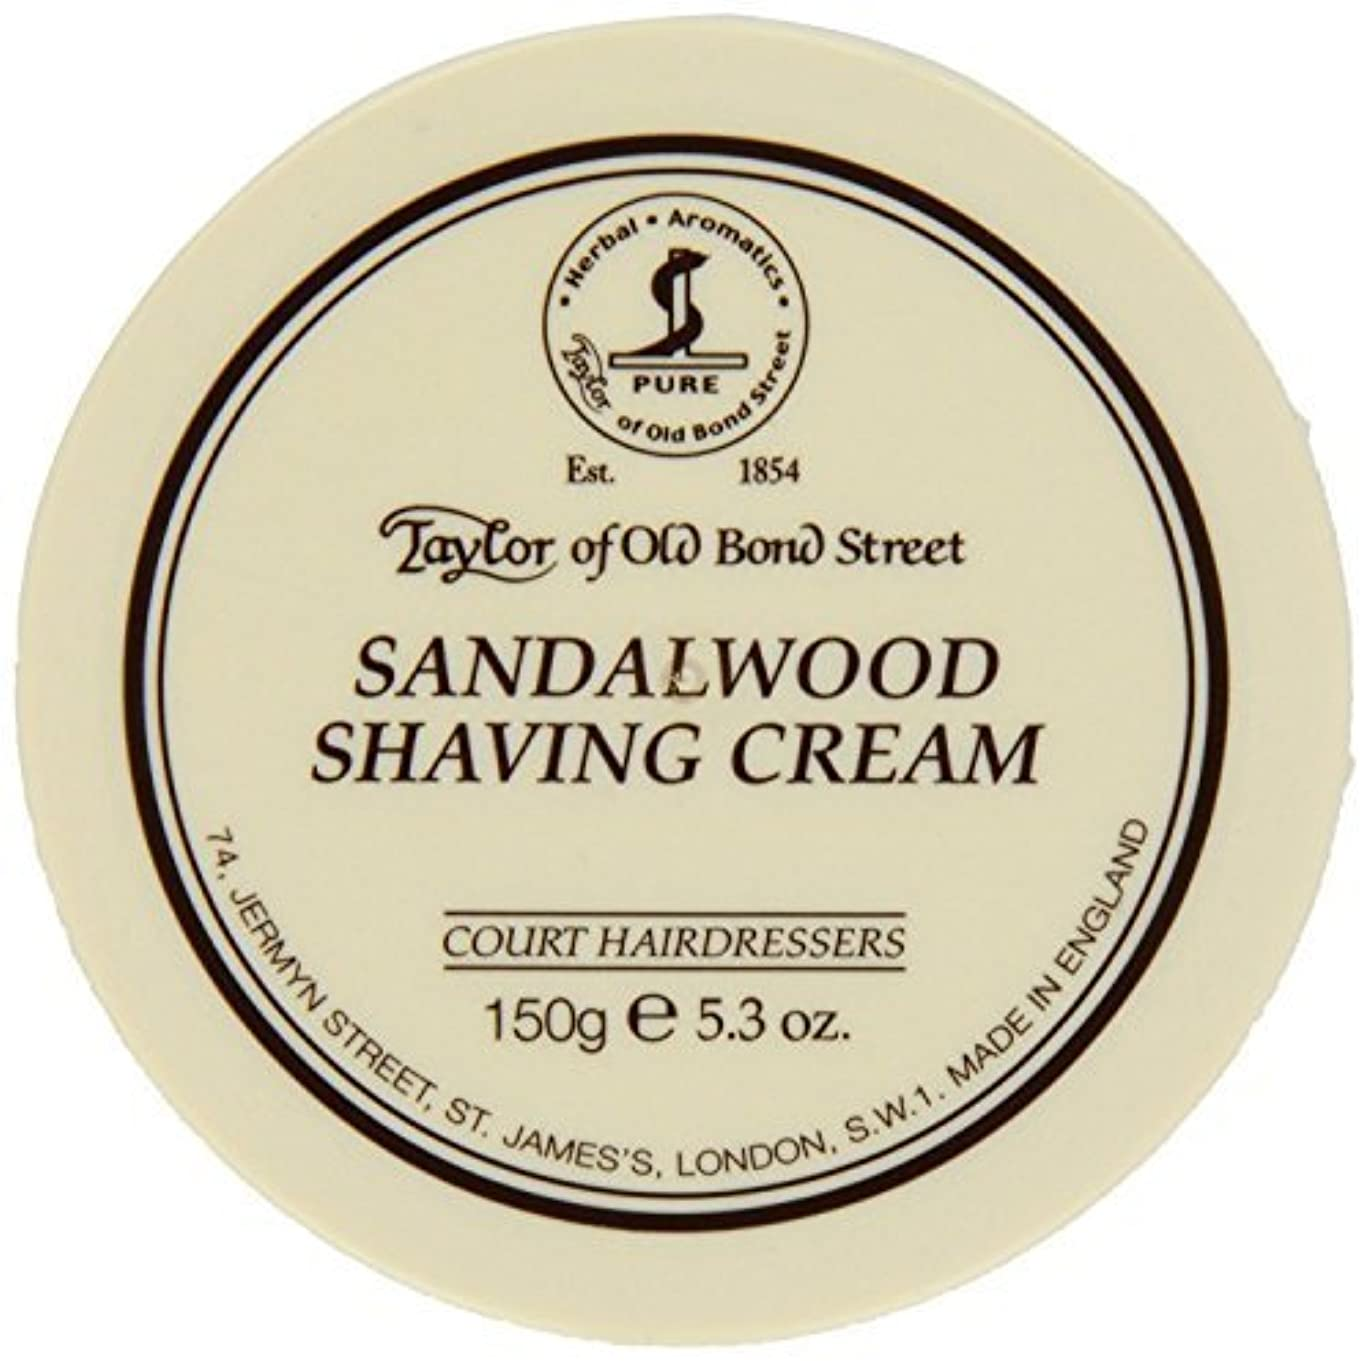 読書をする貢献お客様Taylor of Old Bond Street SHAVING CREAM for SANDALWOOD 150g x 2 Bowls by Taylor of Old Bond Street [並行輸入品]